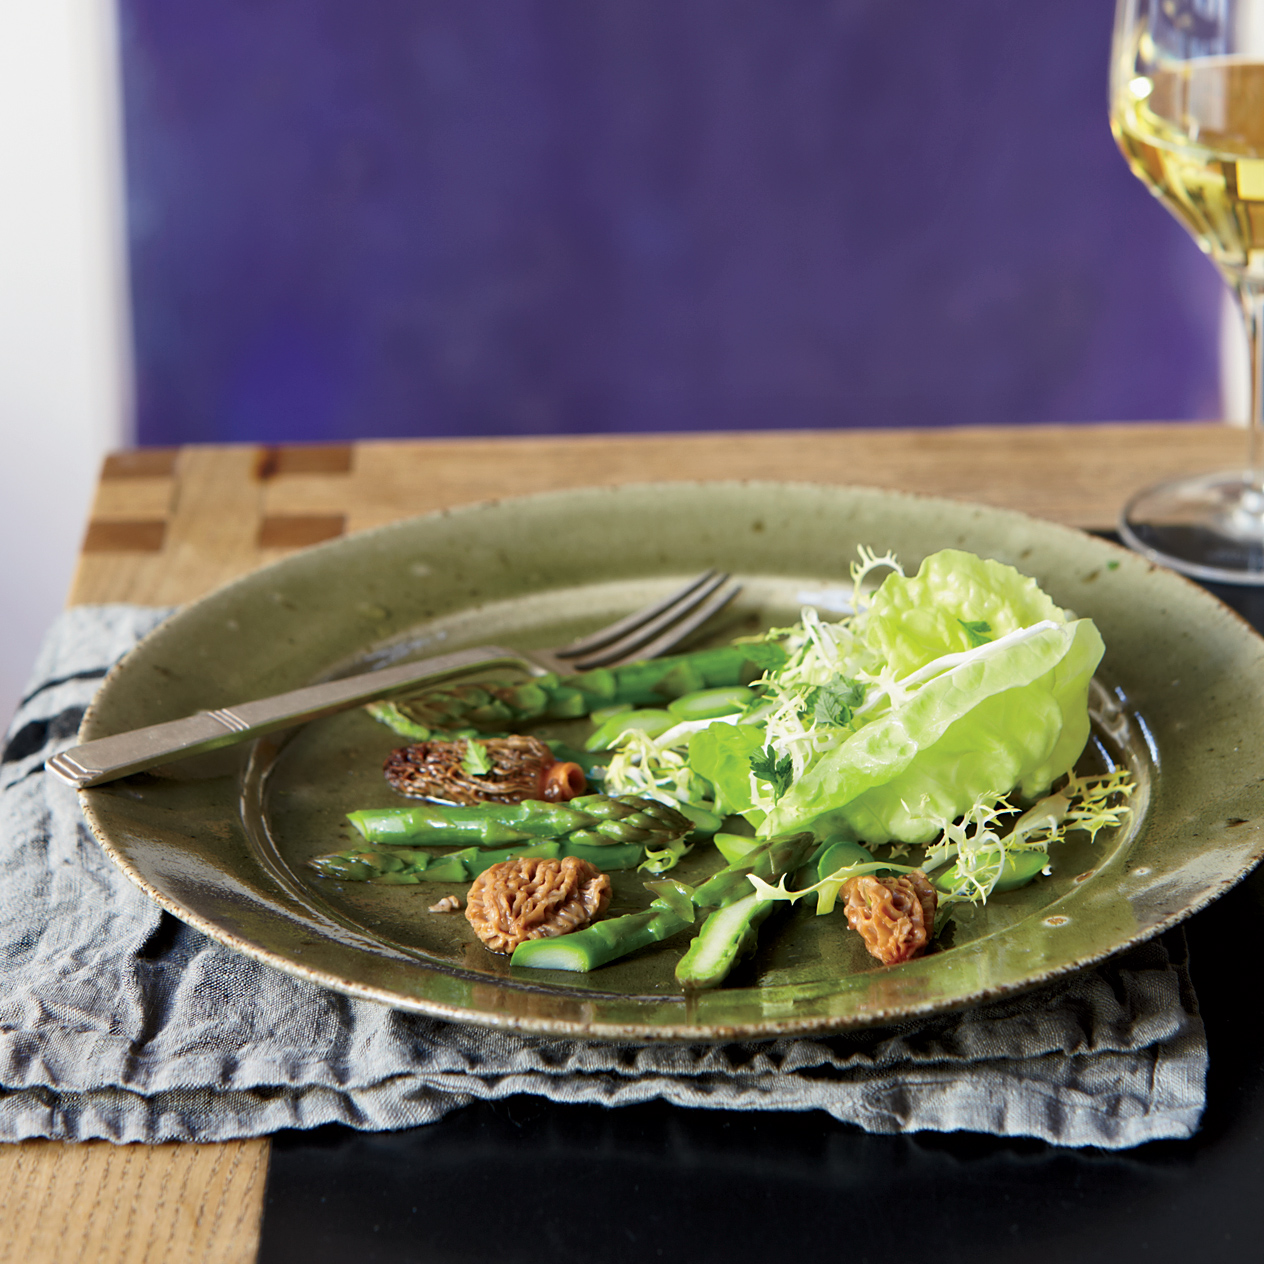 original-201205-r-morel-and-asparagus-salad-with-frisee-and-butter-lettuce.jpg